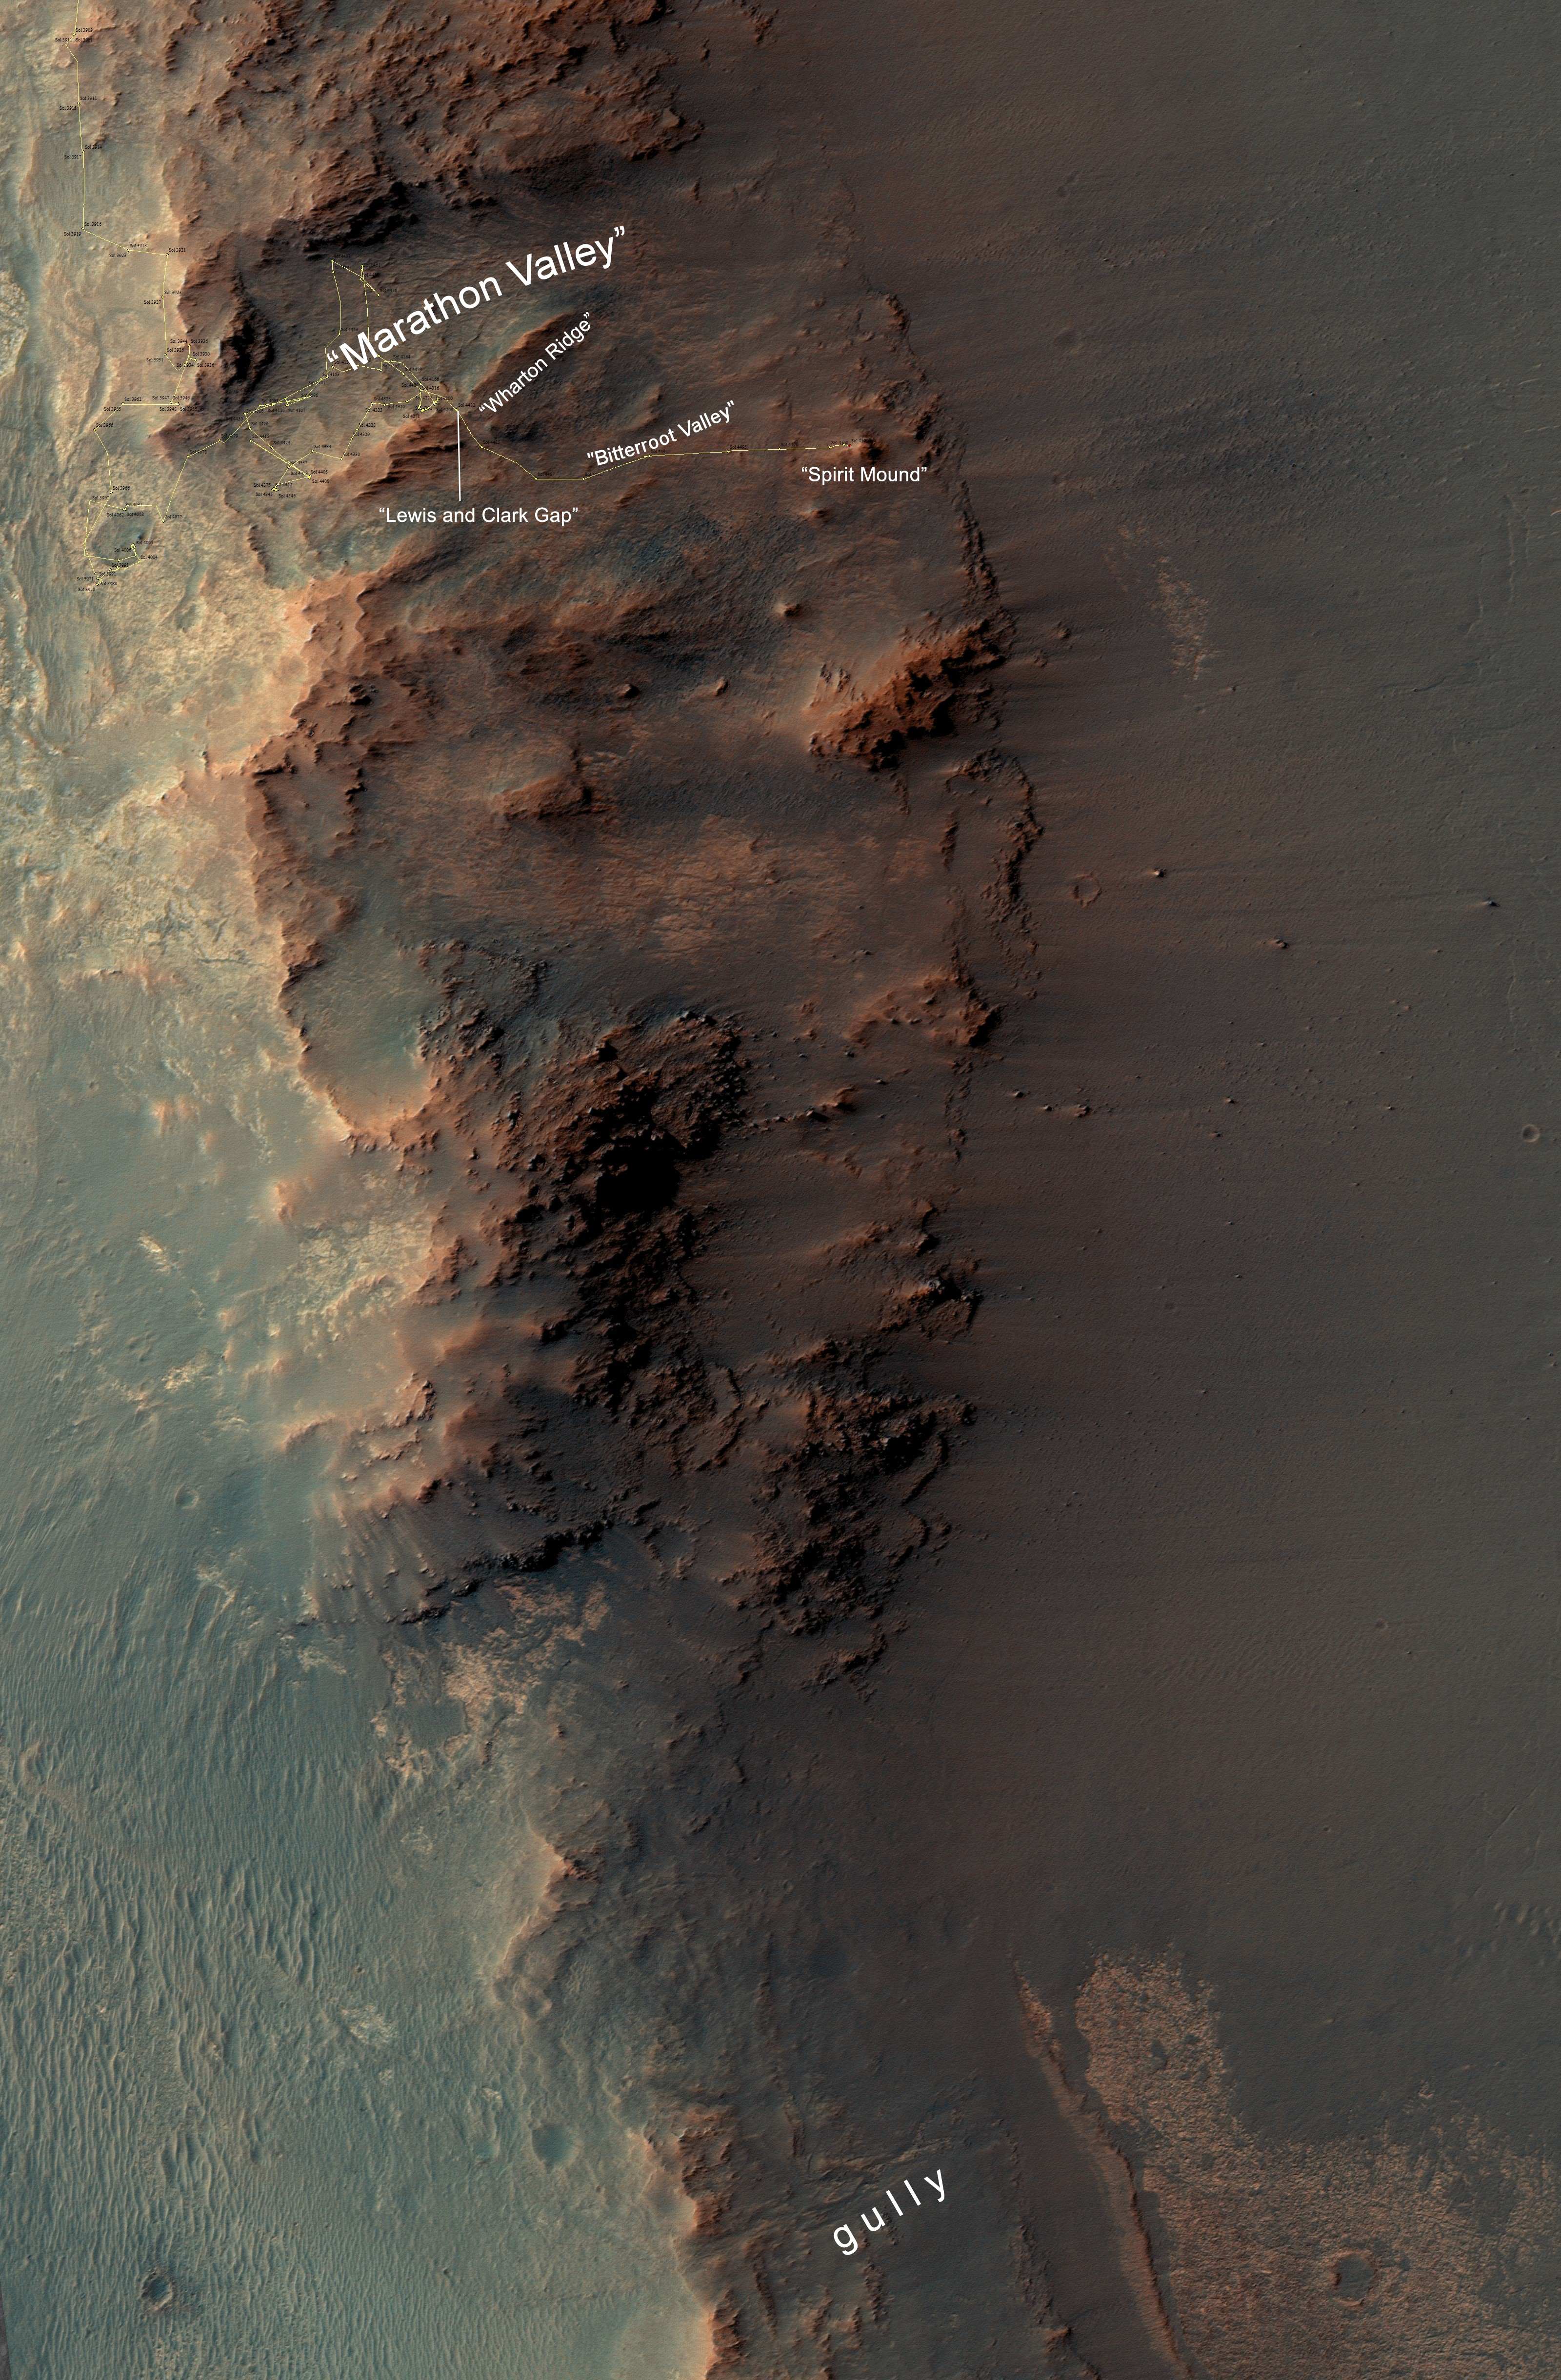 opportunity-marathon-valley-gully-map-pia20854-full